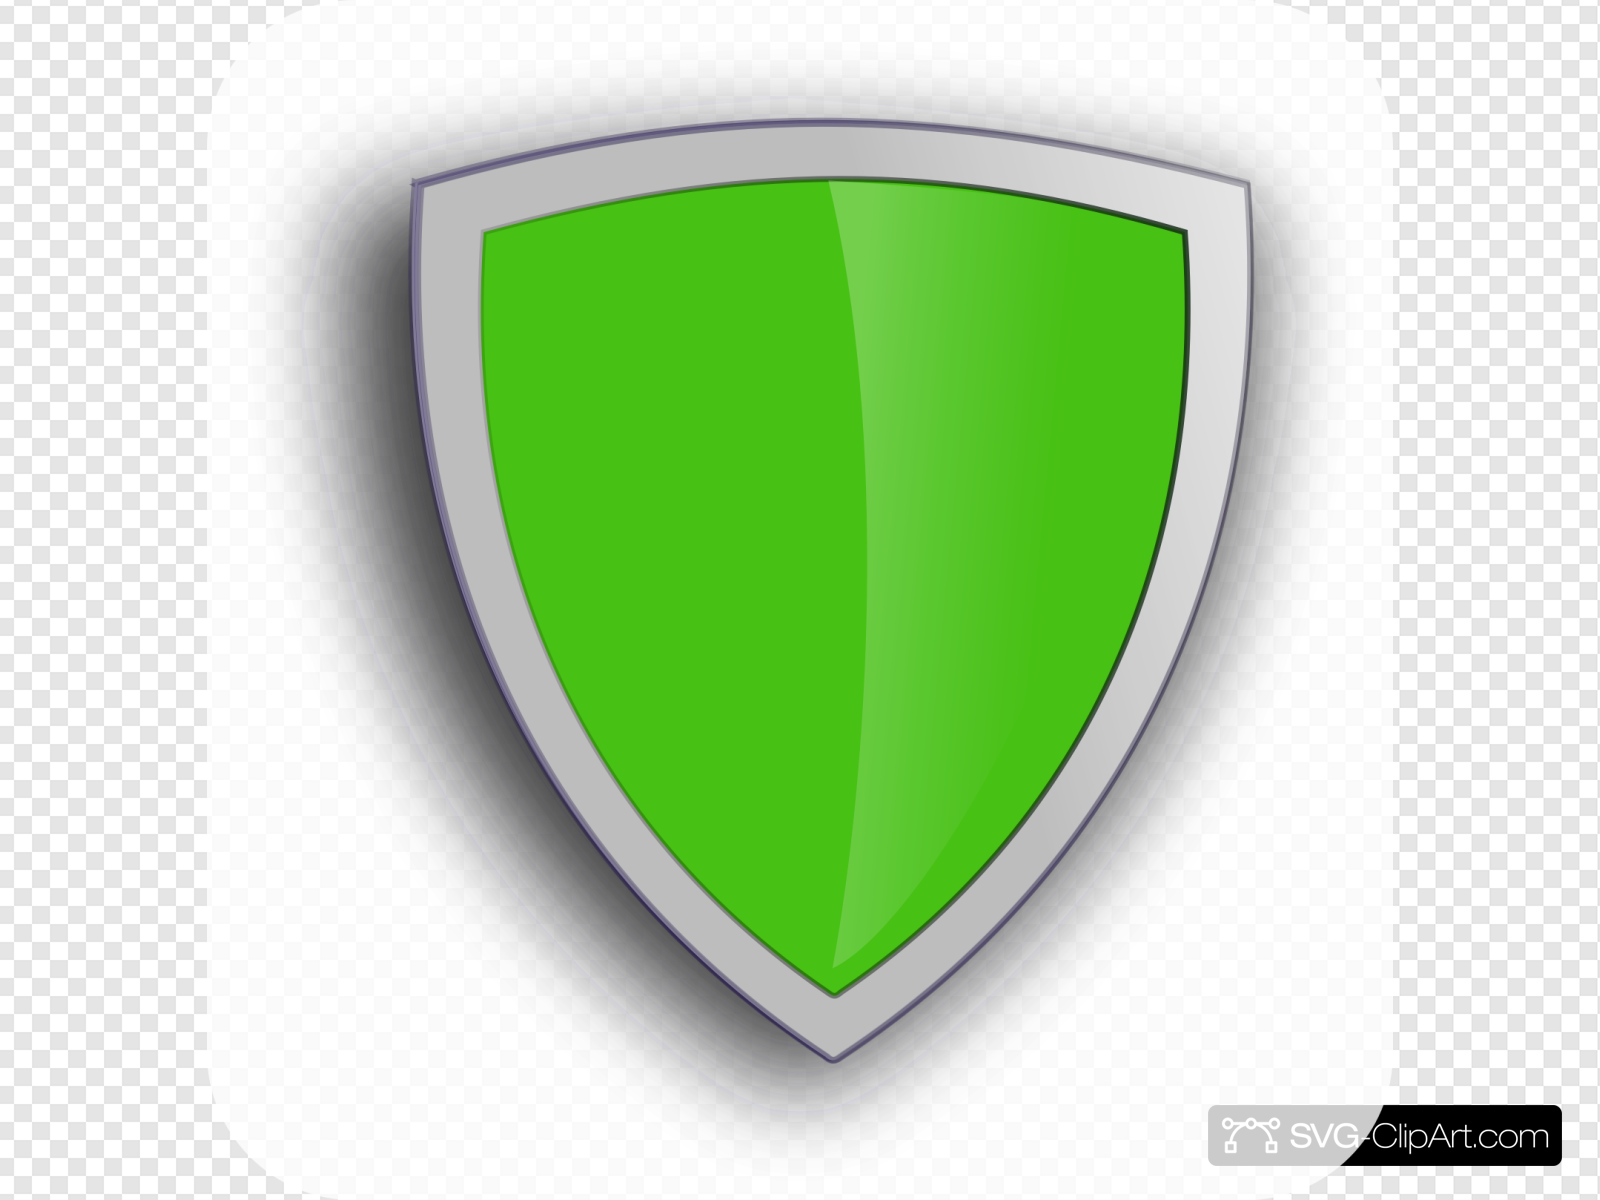 Green Shield Clip art, Icon and SVG.